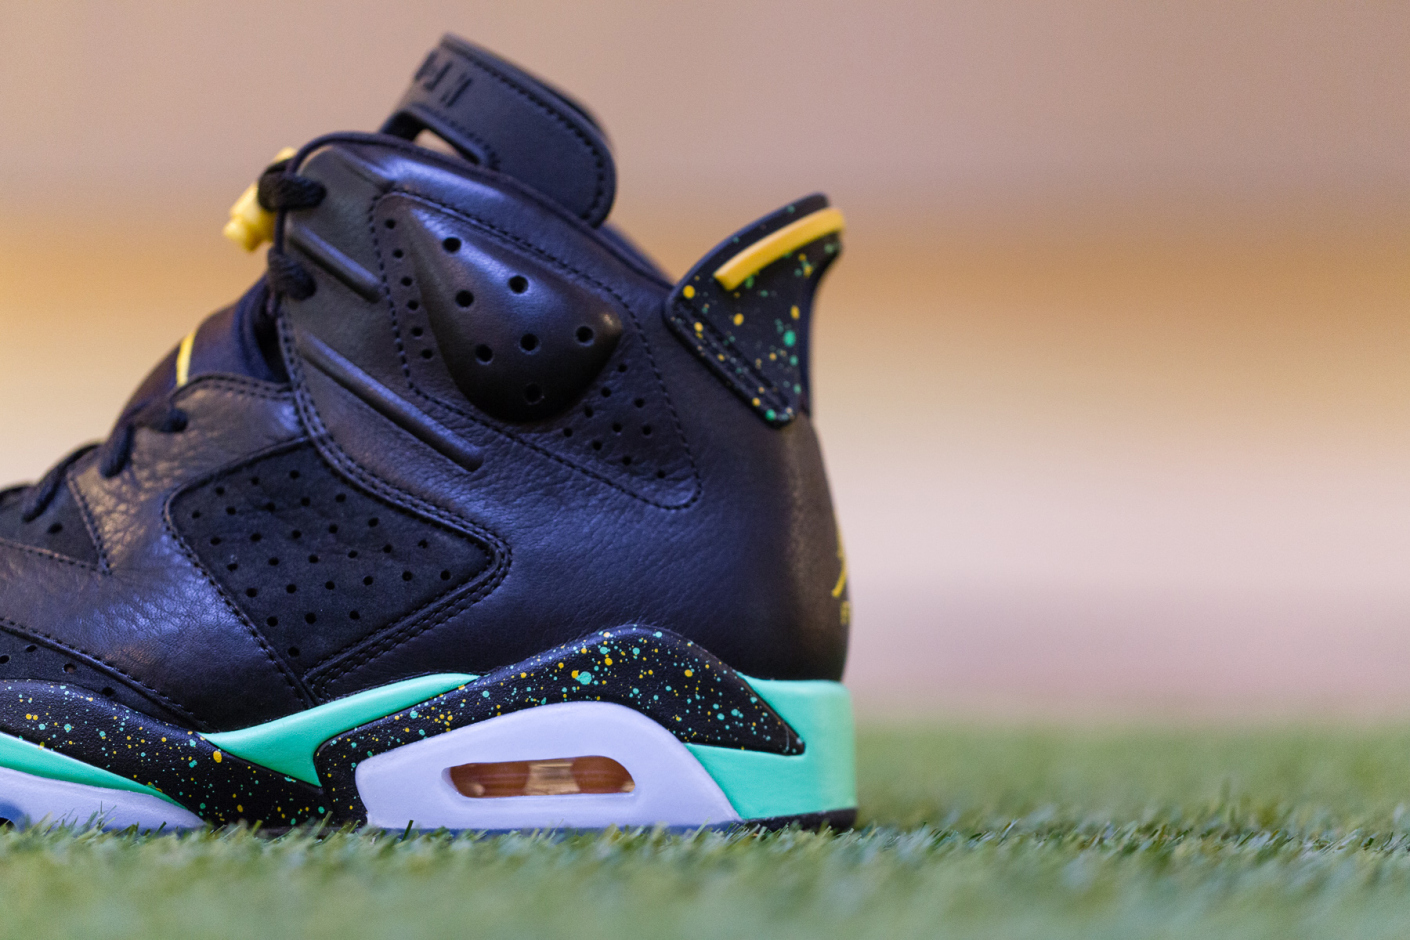 soldes camionnettes femme - Jordan World Cup 'Brazil Pack' To Retail for $500 | Sole Collector